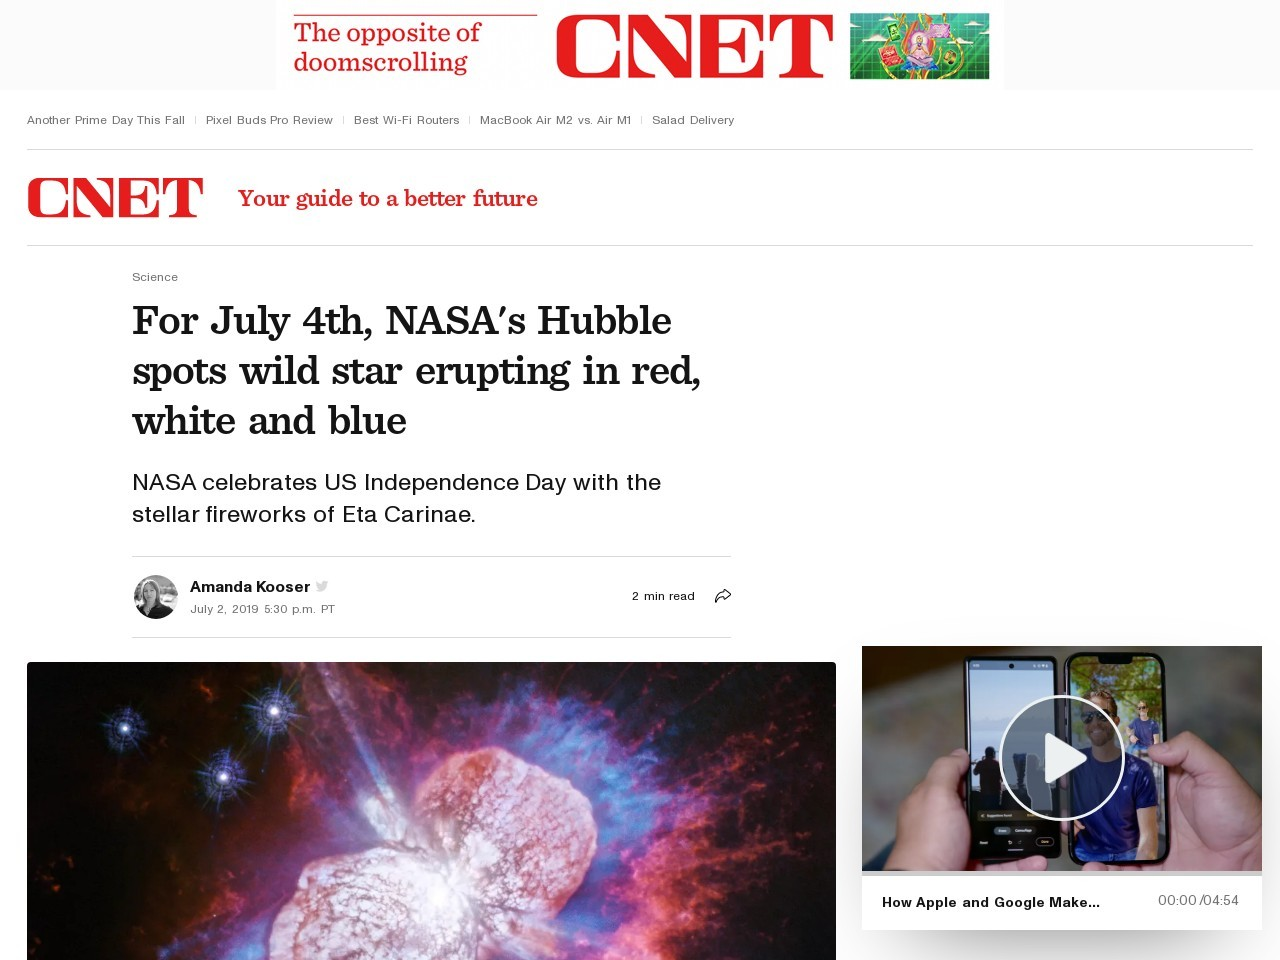 For July 4th, NASA's Hubble spots wild star erupting in red, white and blue     – CNET